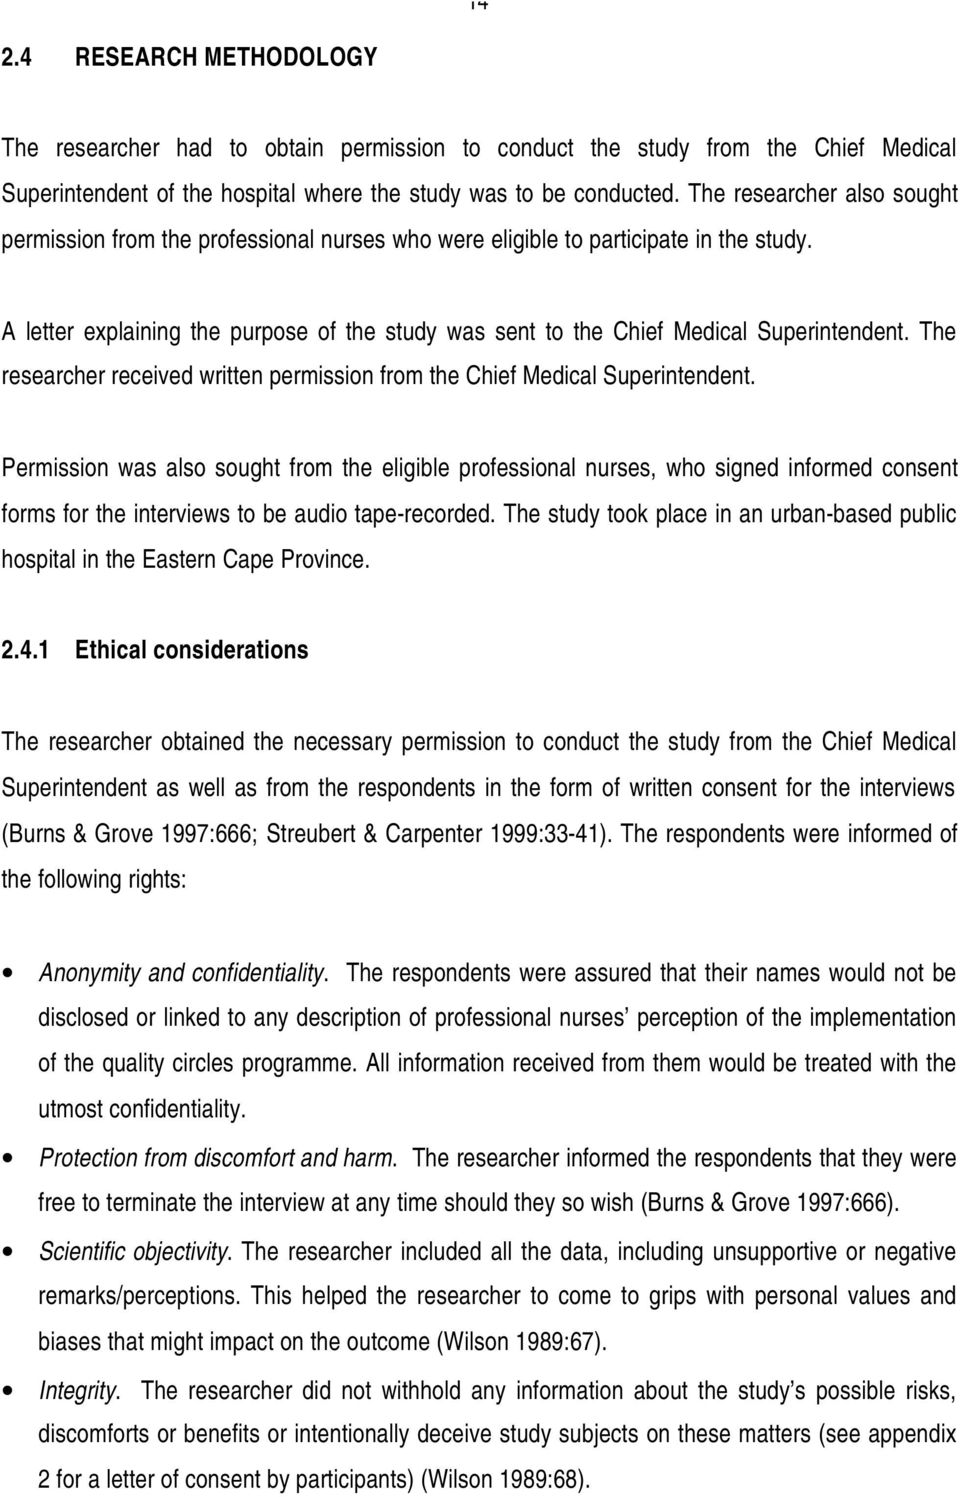 A letter explaining the purpose of the study was sent to the Chief Medical Superintendent. The researcher received written permission from the Chief Medical Superintendent.